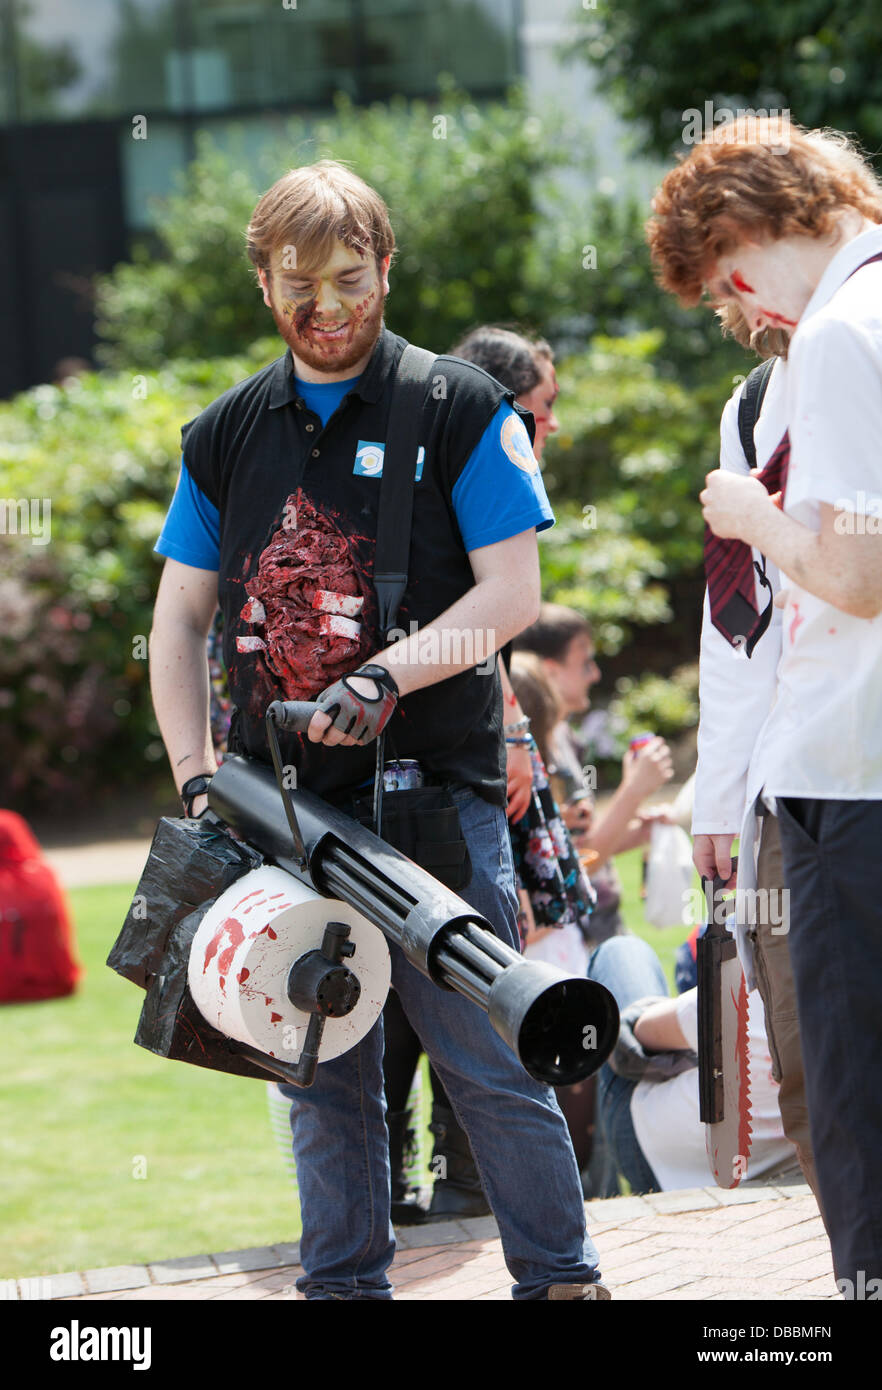 Birmingham, UK. 27th July, 2013. Tha annual Birmingham Zombie Walk takes plaace in Birmingham, UK. Pictured: Bringing - Stock Image